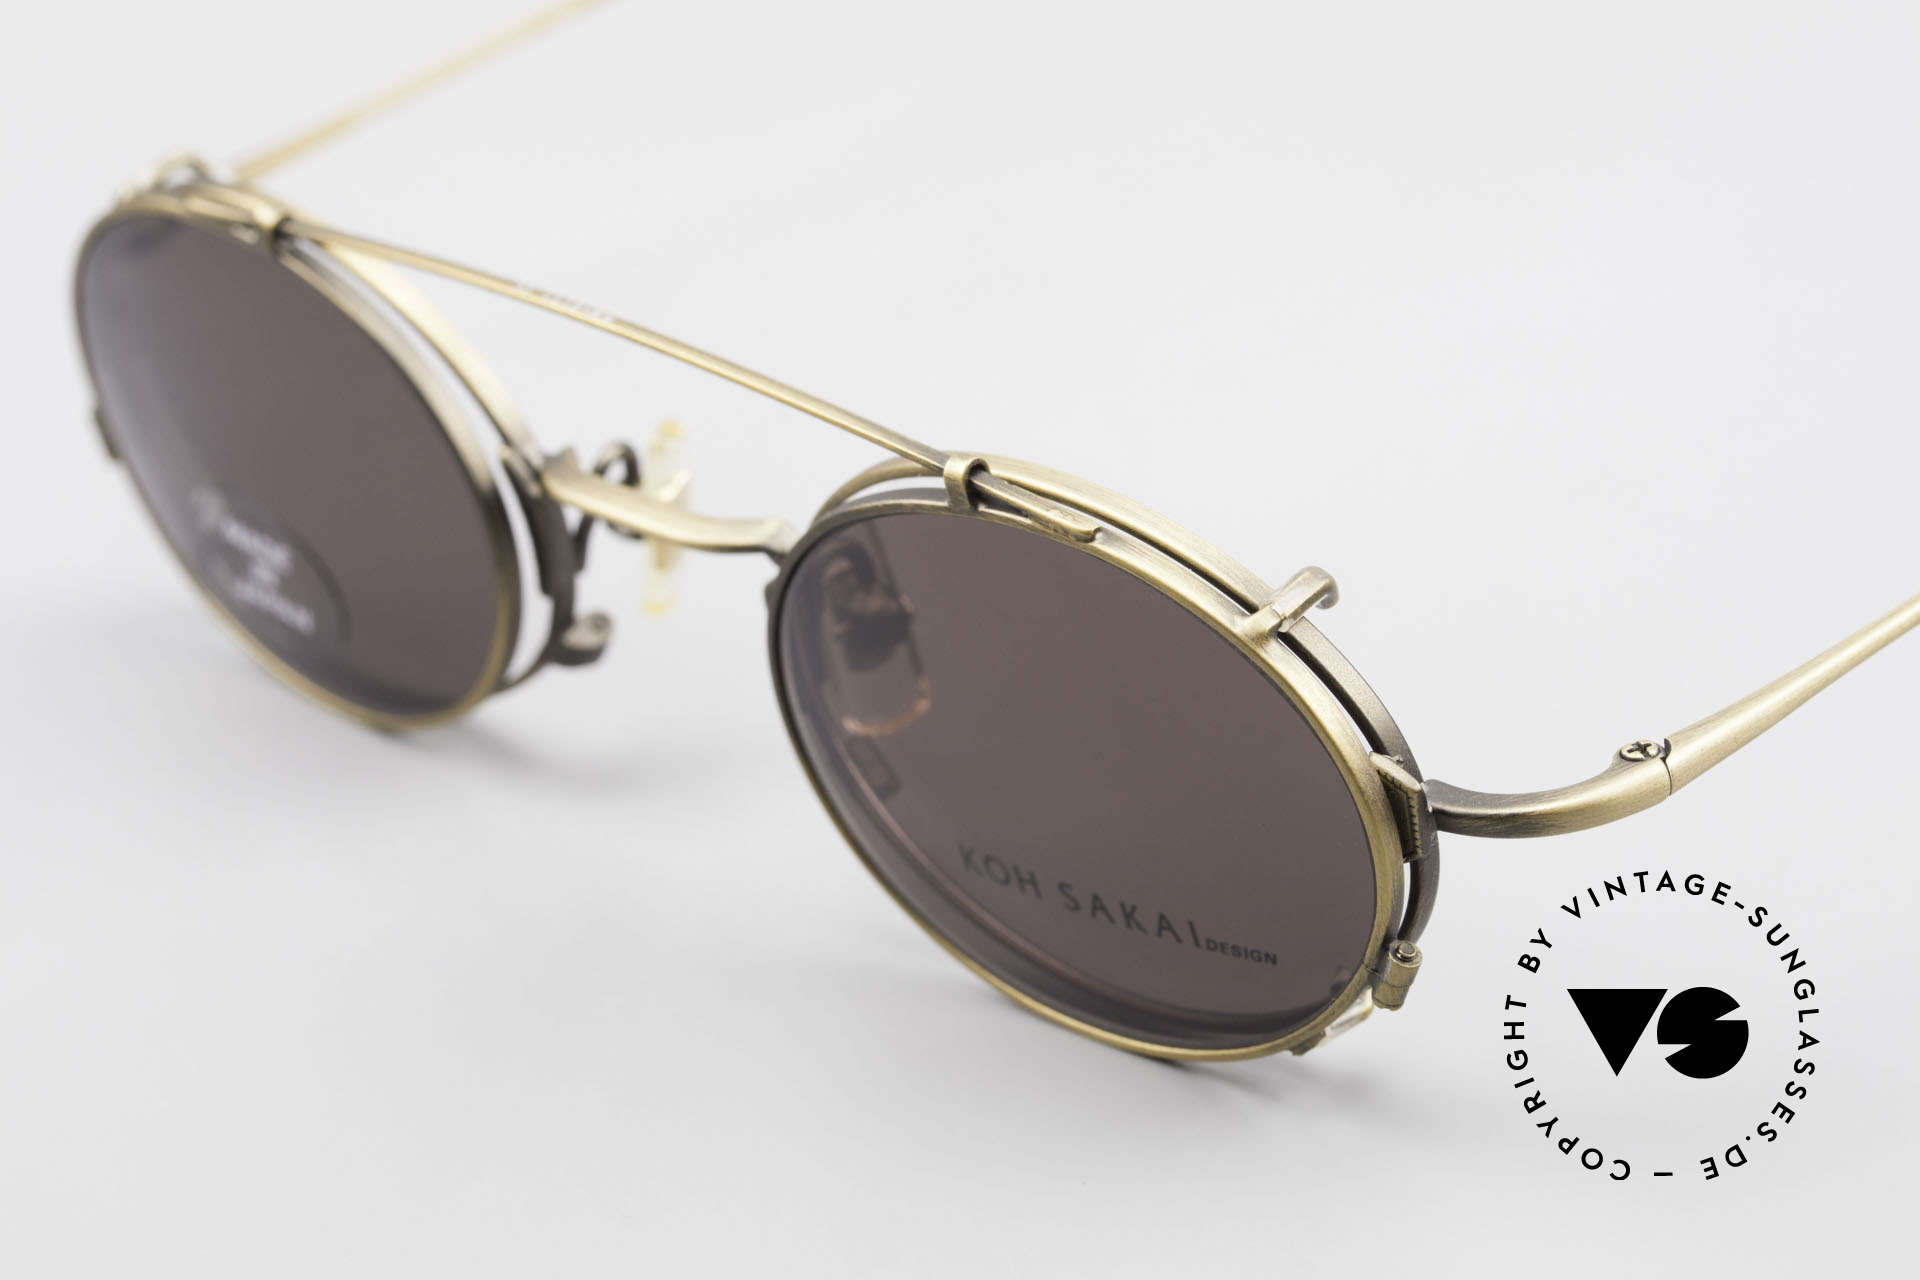 Koh Sakai KS9711 Vintage Glasses Oval Clip On, made in the same factory like Oliver Peoples & Eyevan, Made for Men and Women